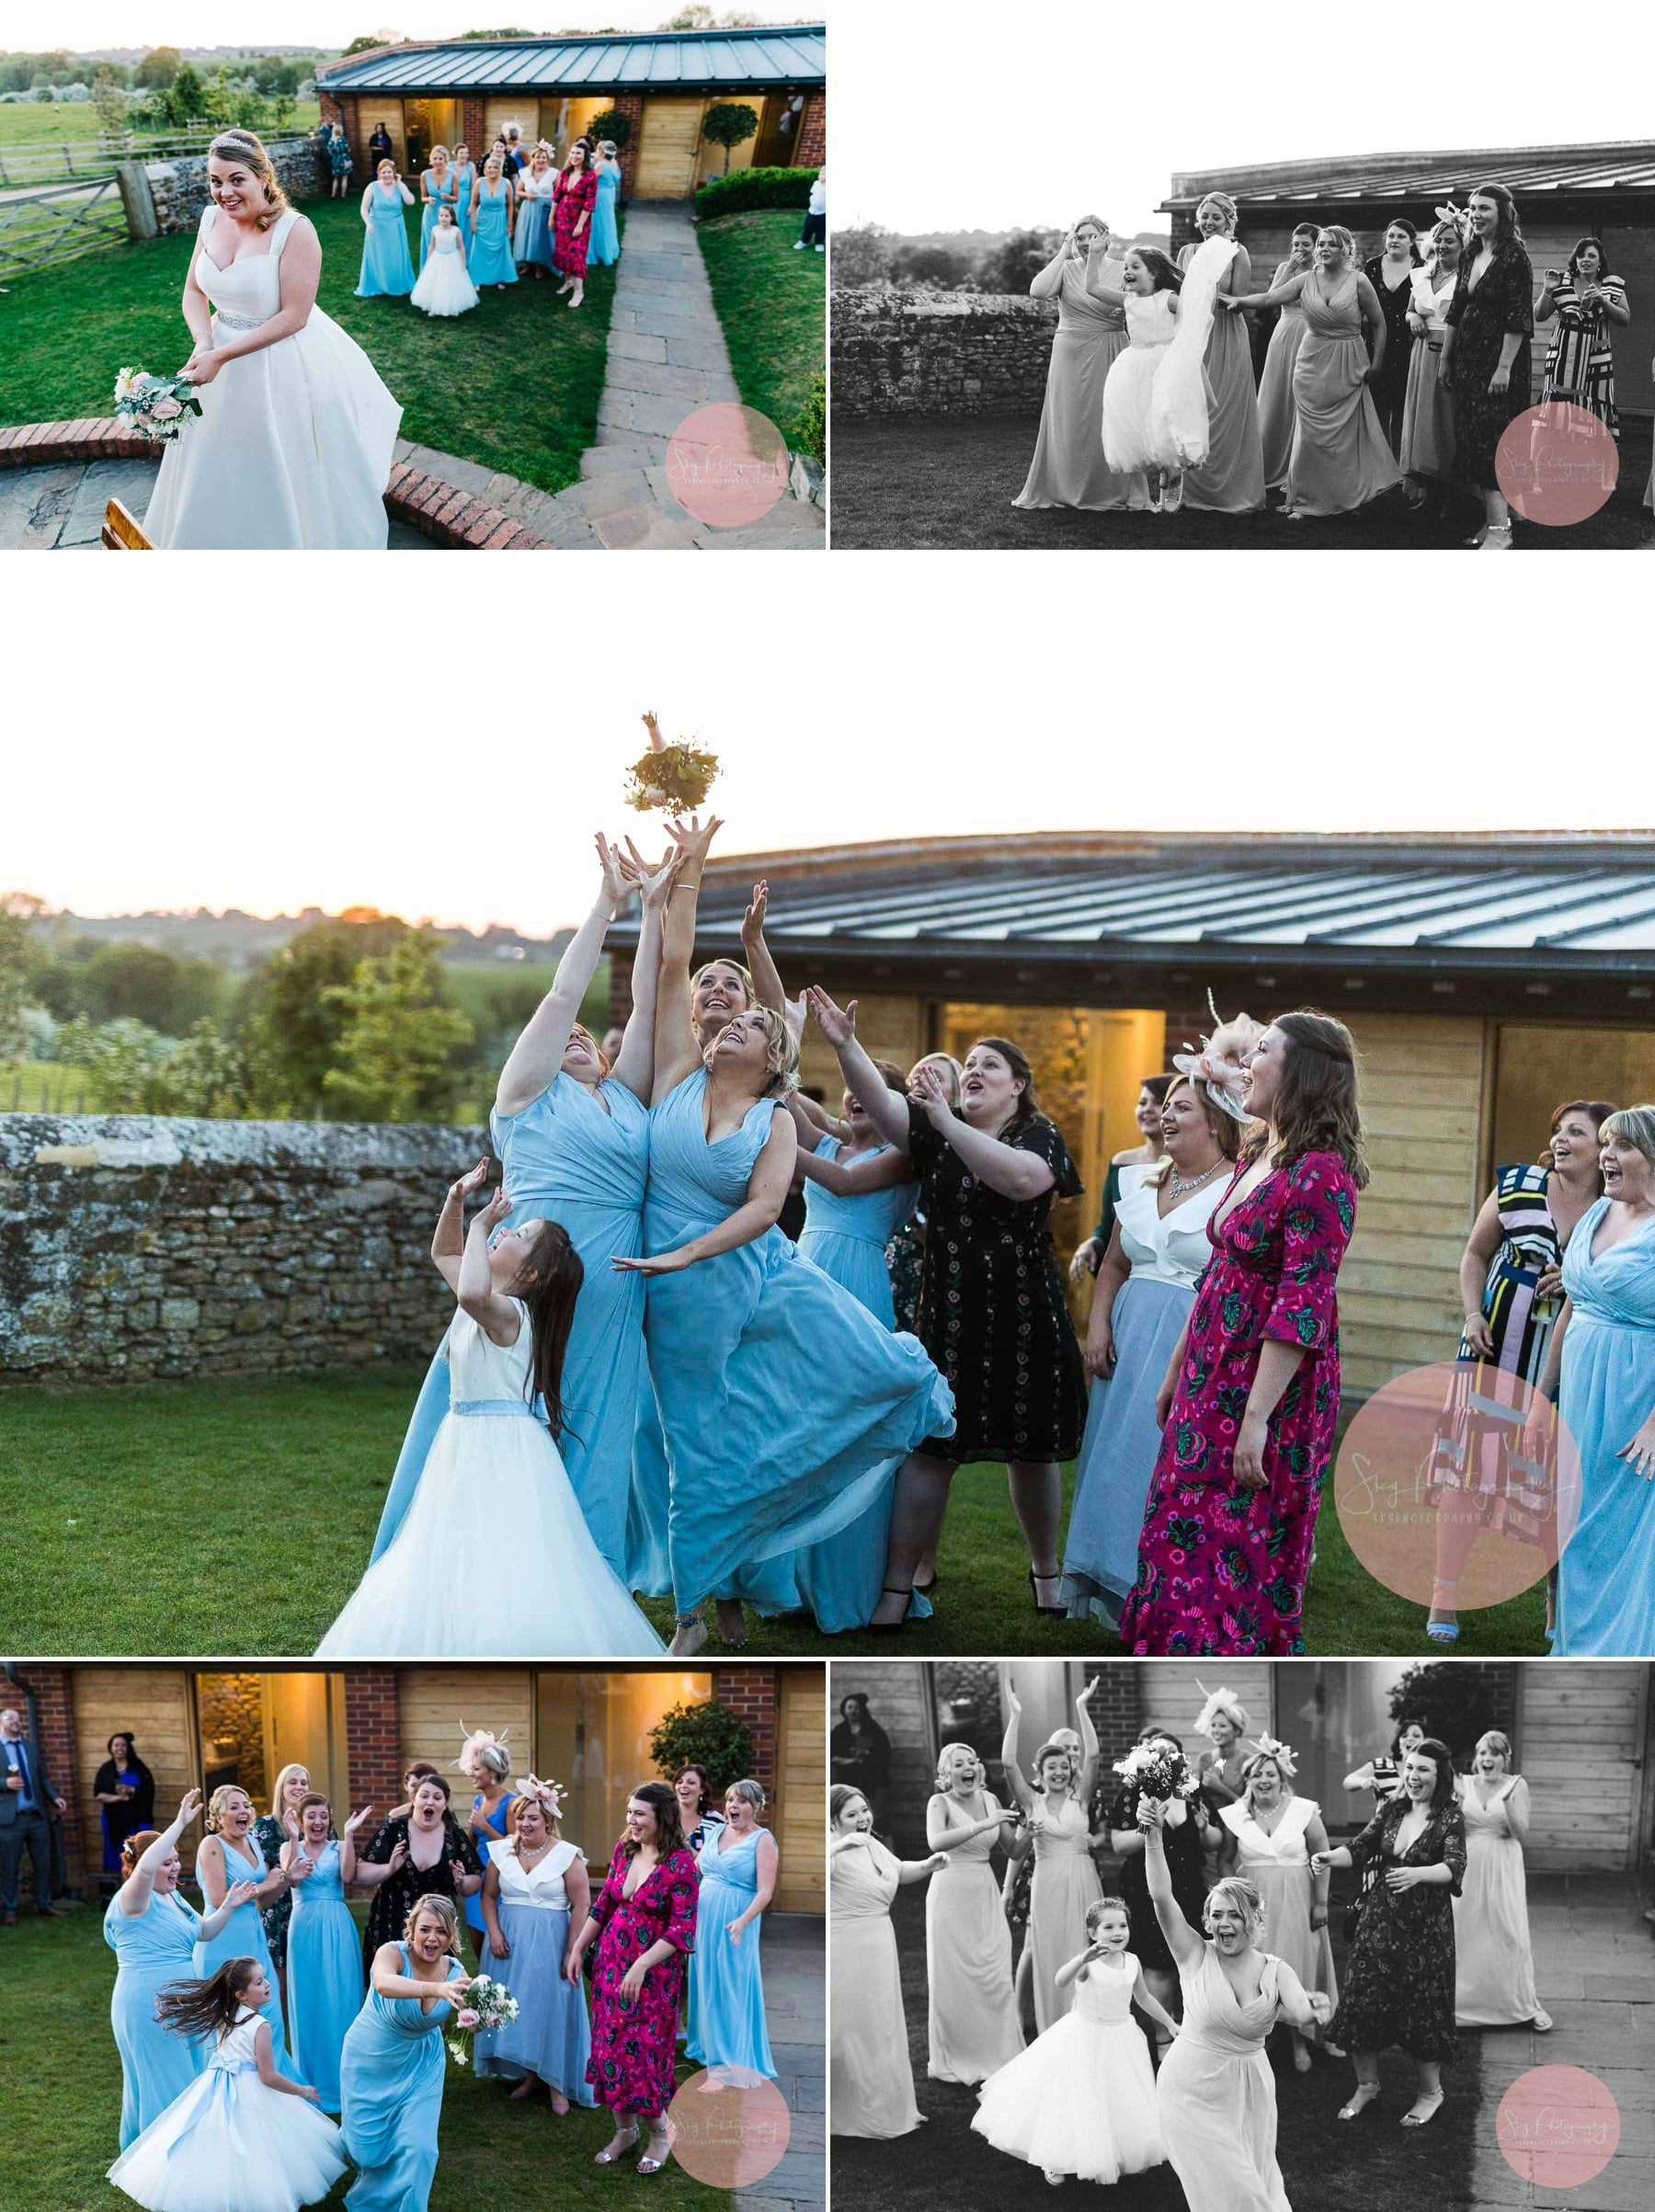 Amazing throwing the bouquet photo sequence